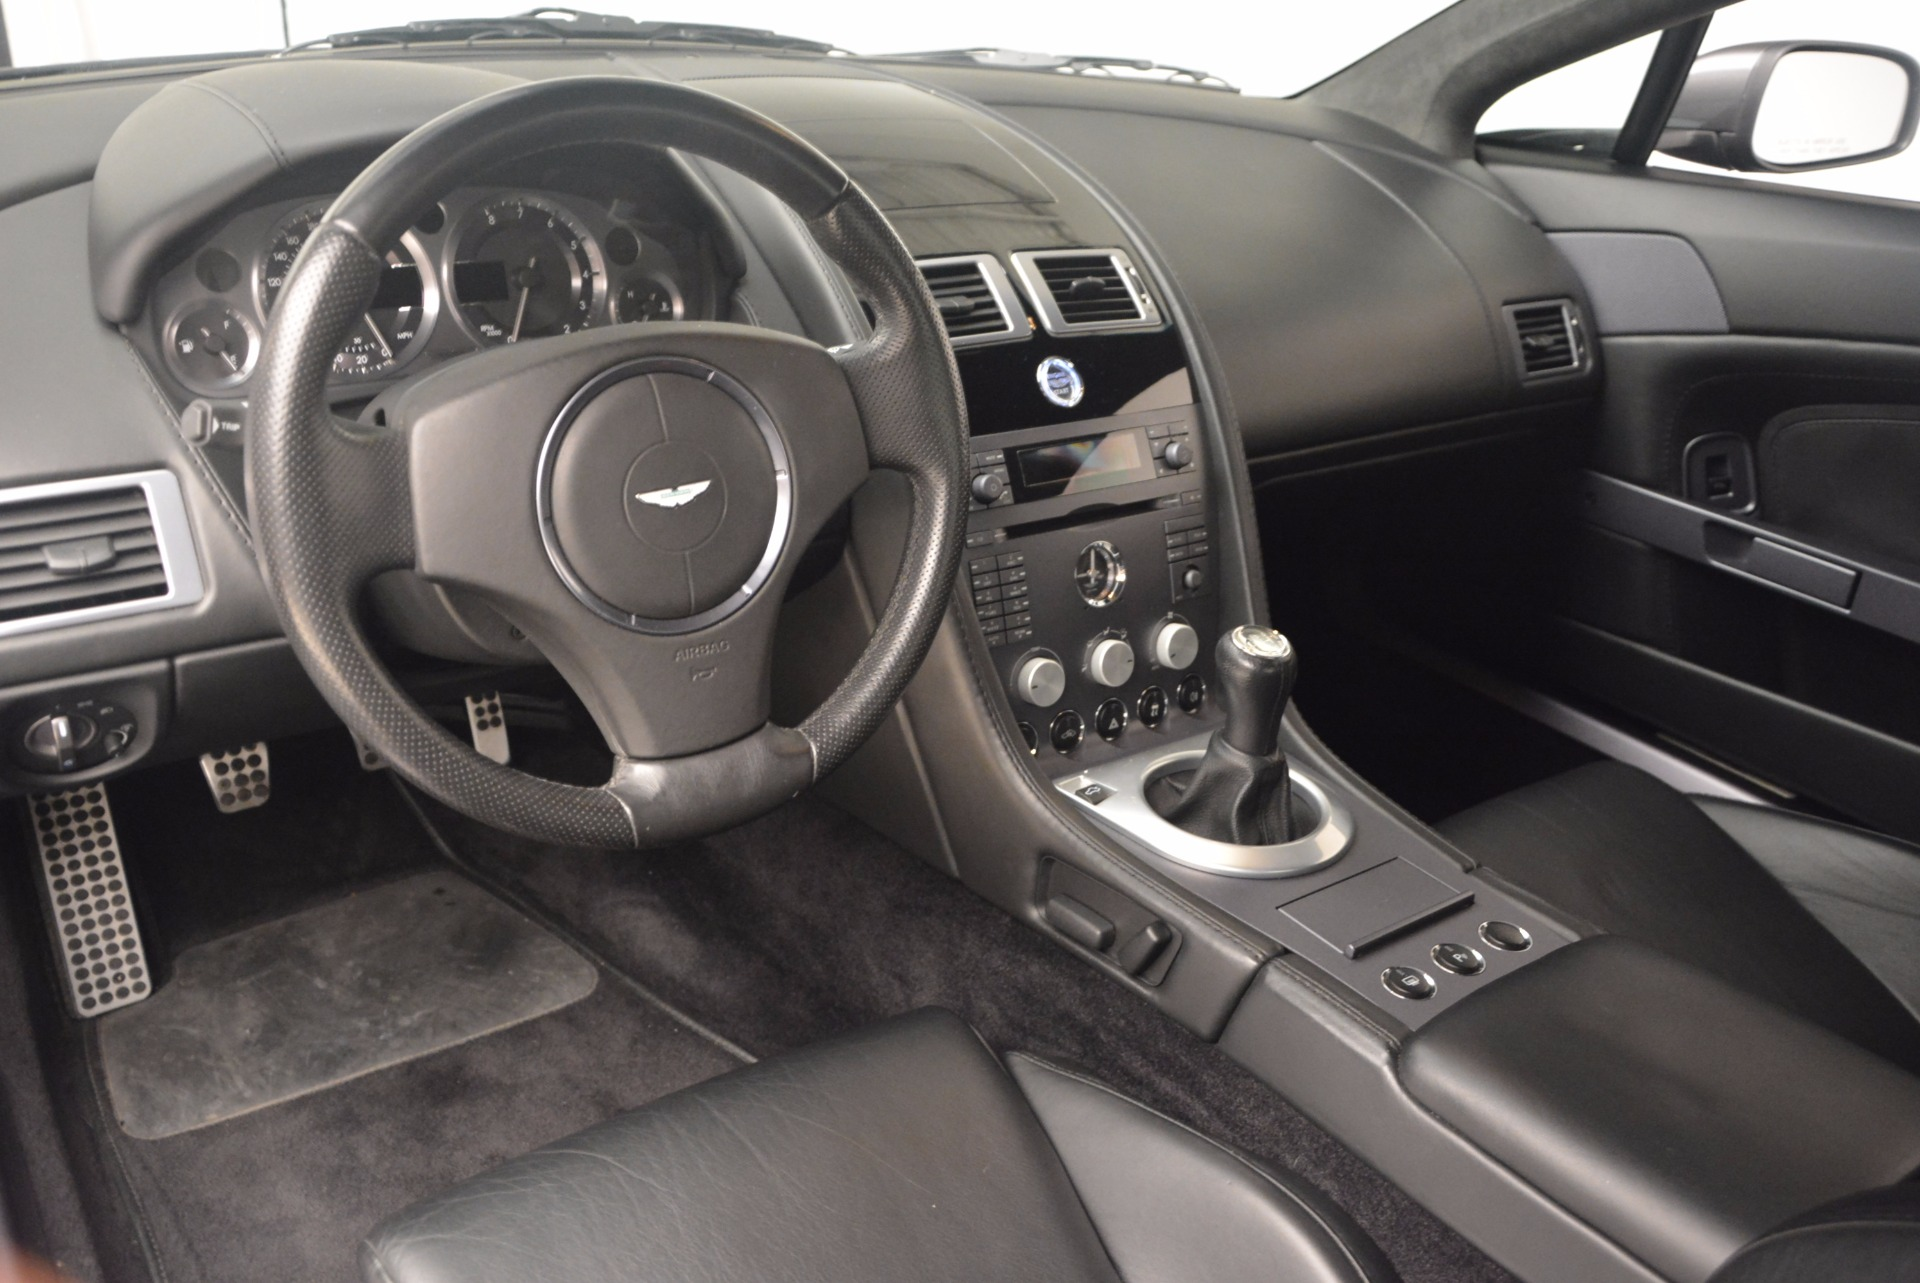 Used 2006 Aston Martin V8 Vantage Coupe  For Sale In Greenwich, CT 1180_p14